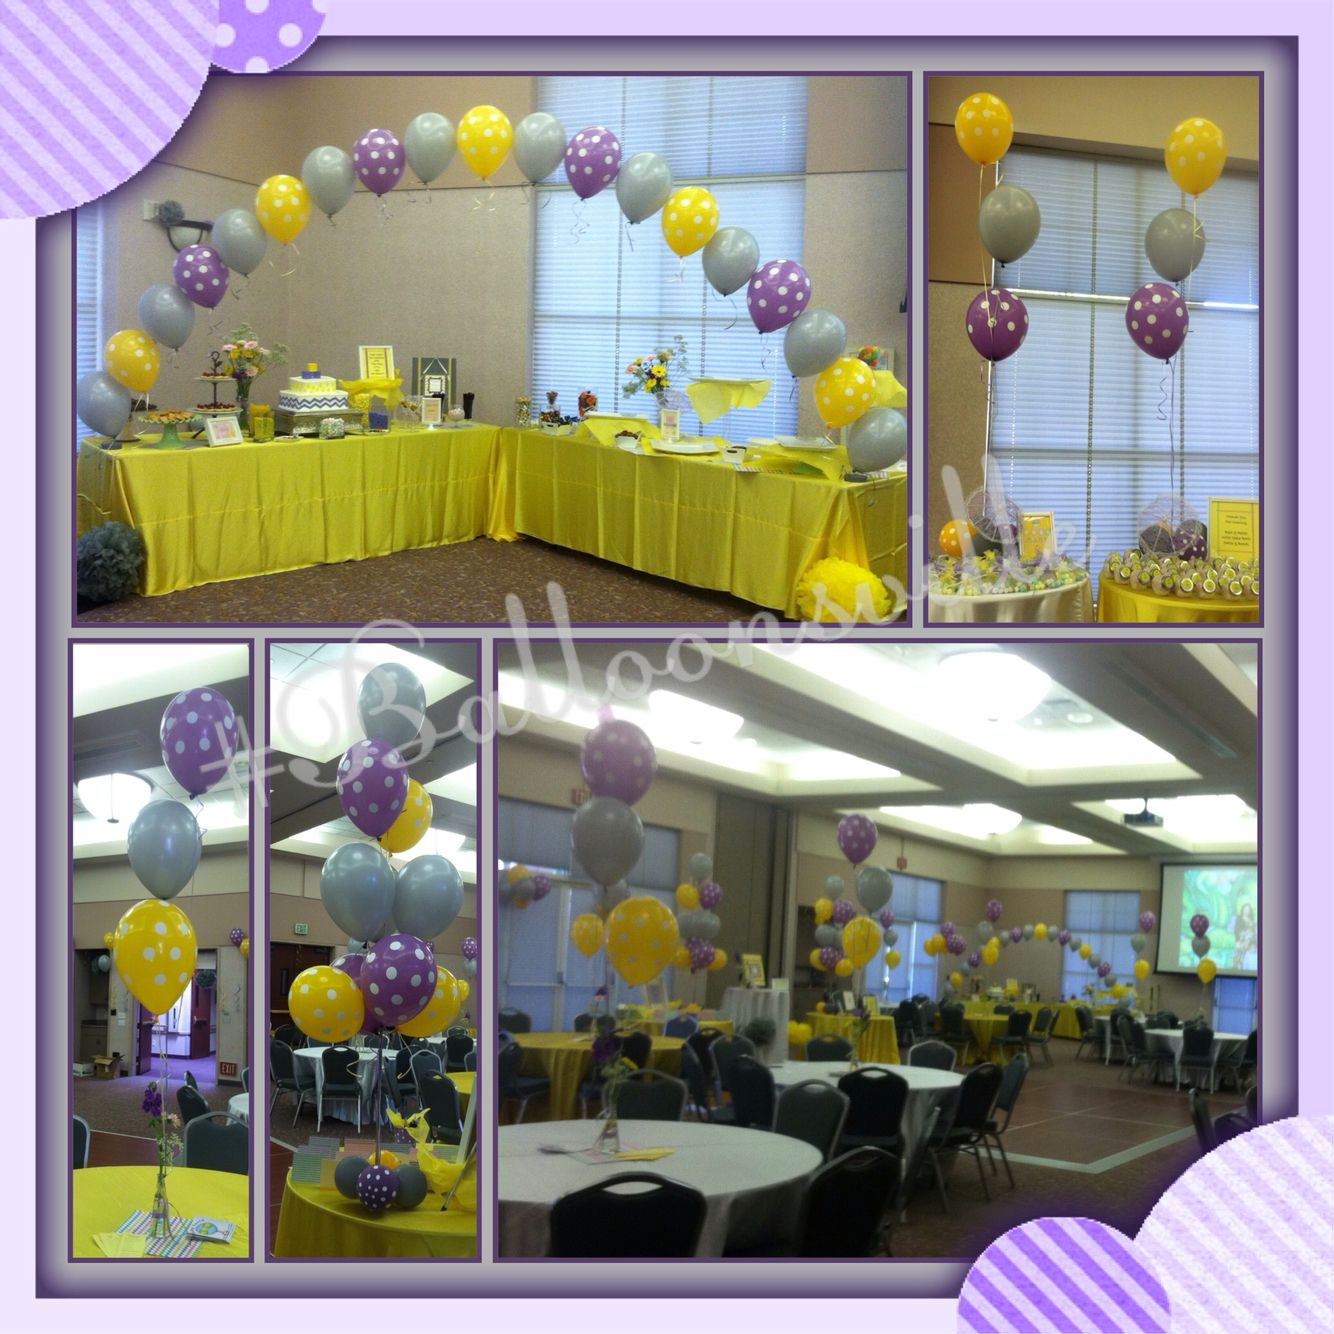 Polkadot theme balloon decor lavender yellow polkadot for Balloon string decorations